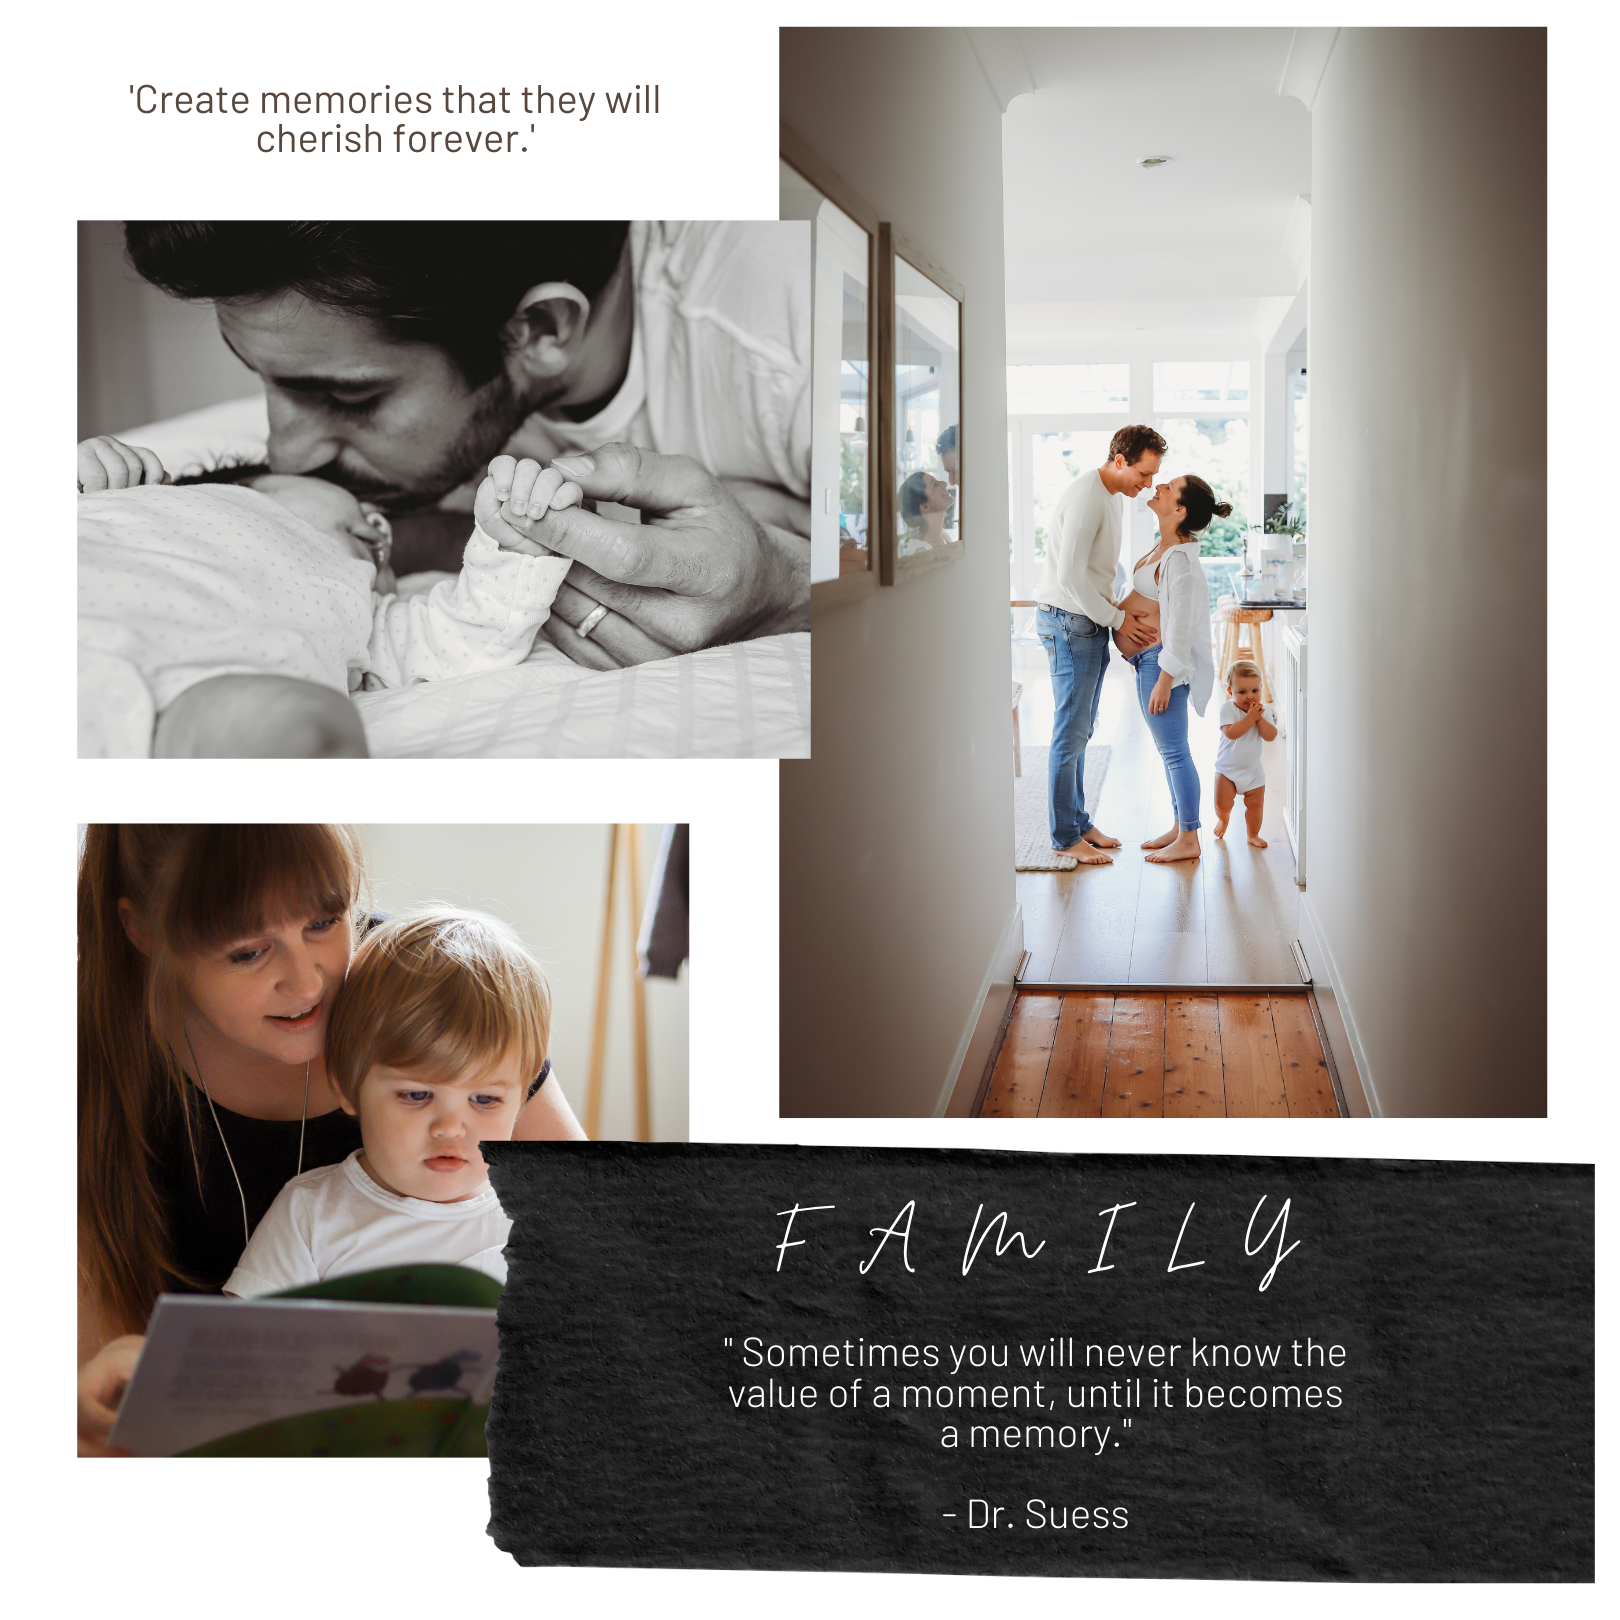 "<img src=""christie victoria photography Family header.jpg"" alt=""Family photo shoot fatherhood maternity and reading a book"">"